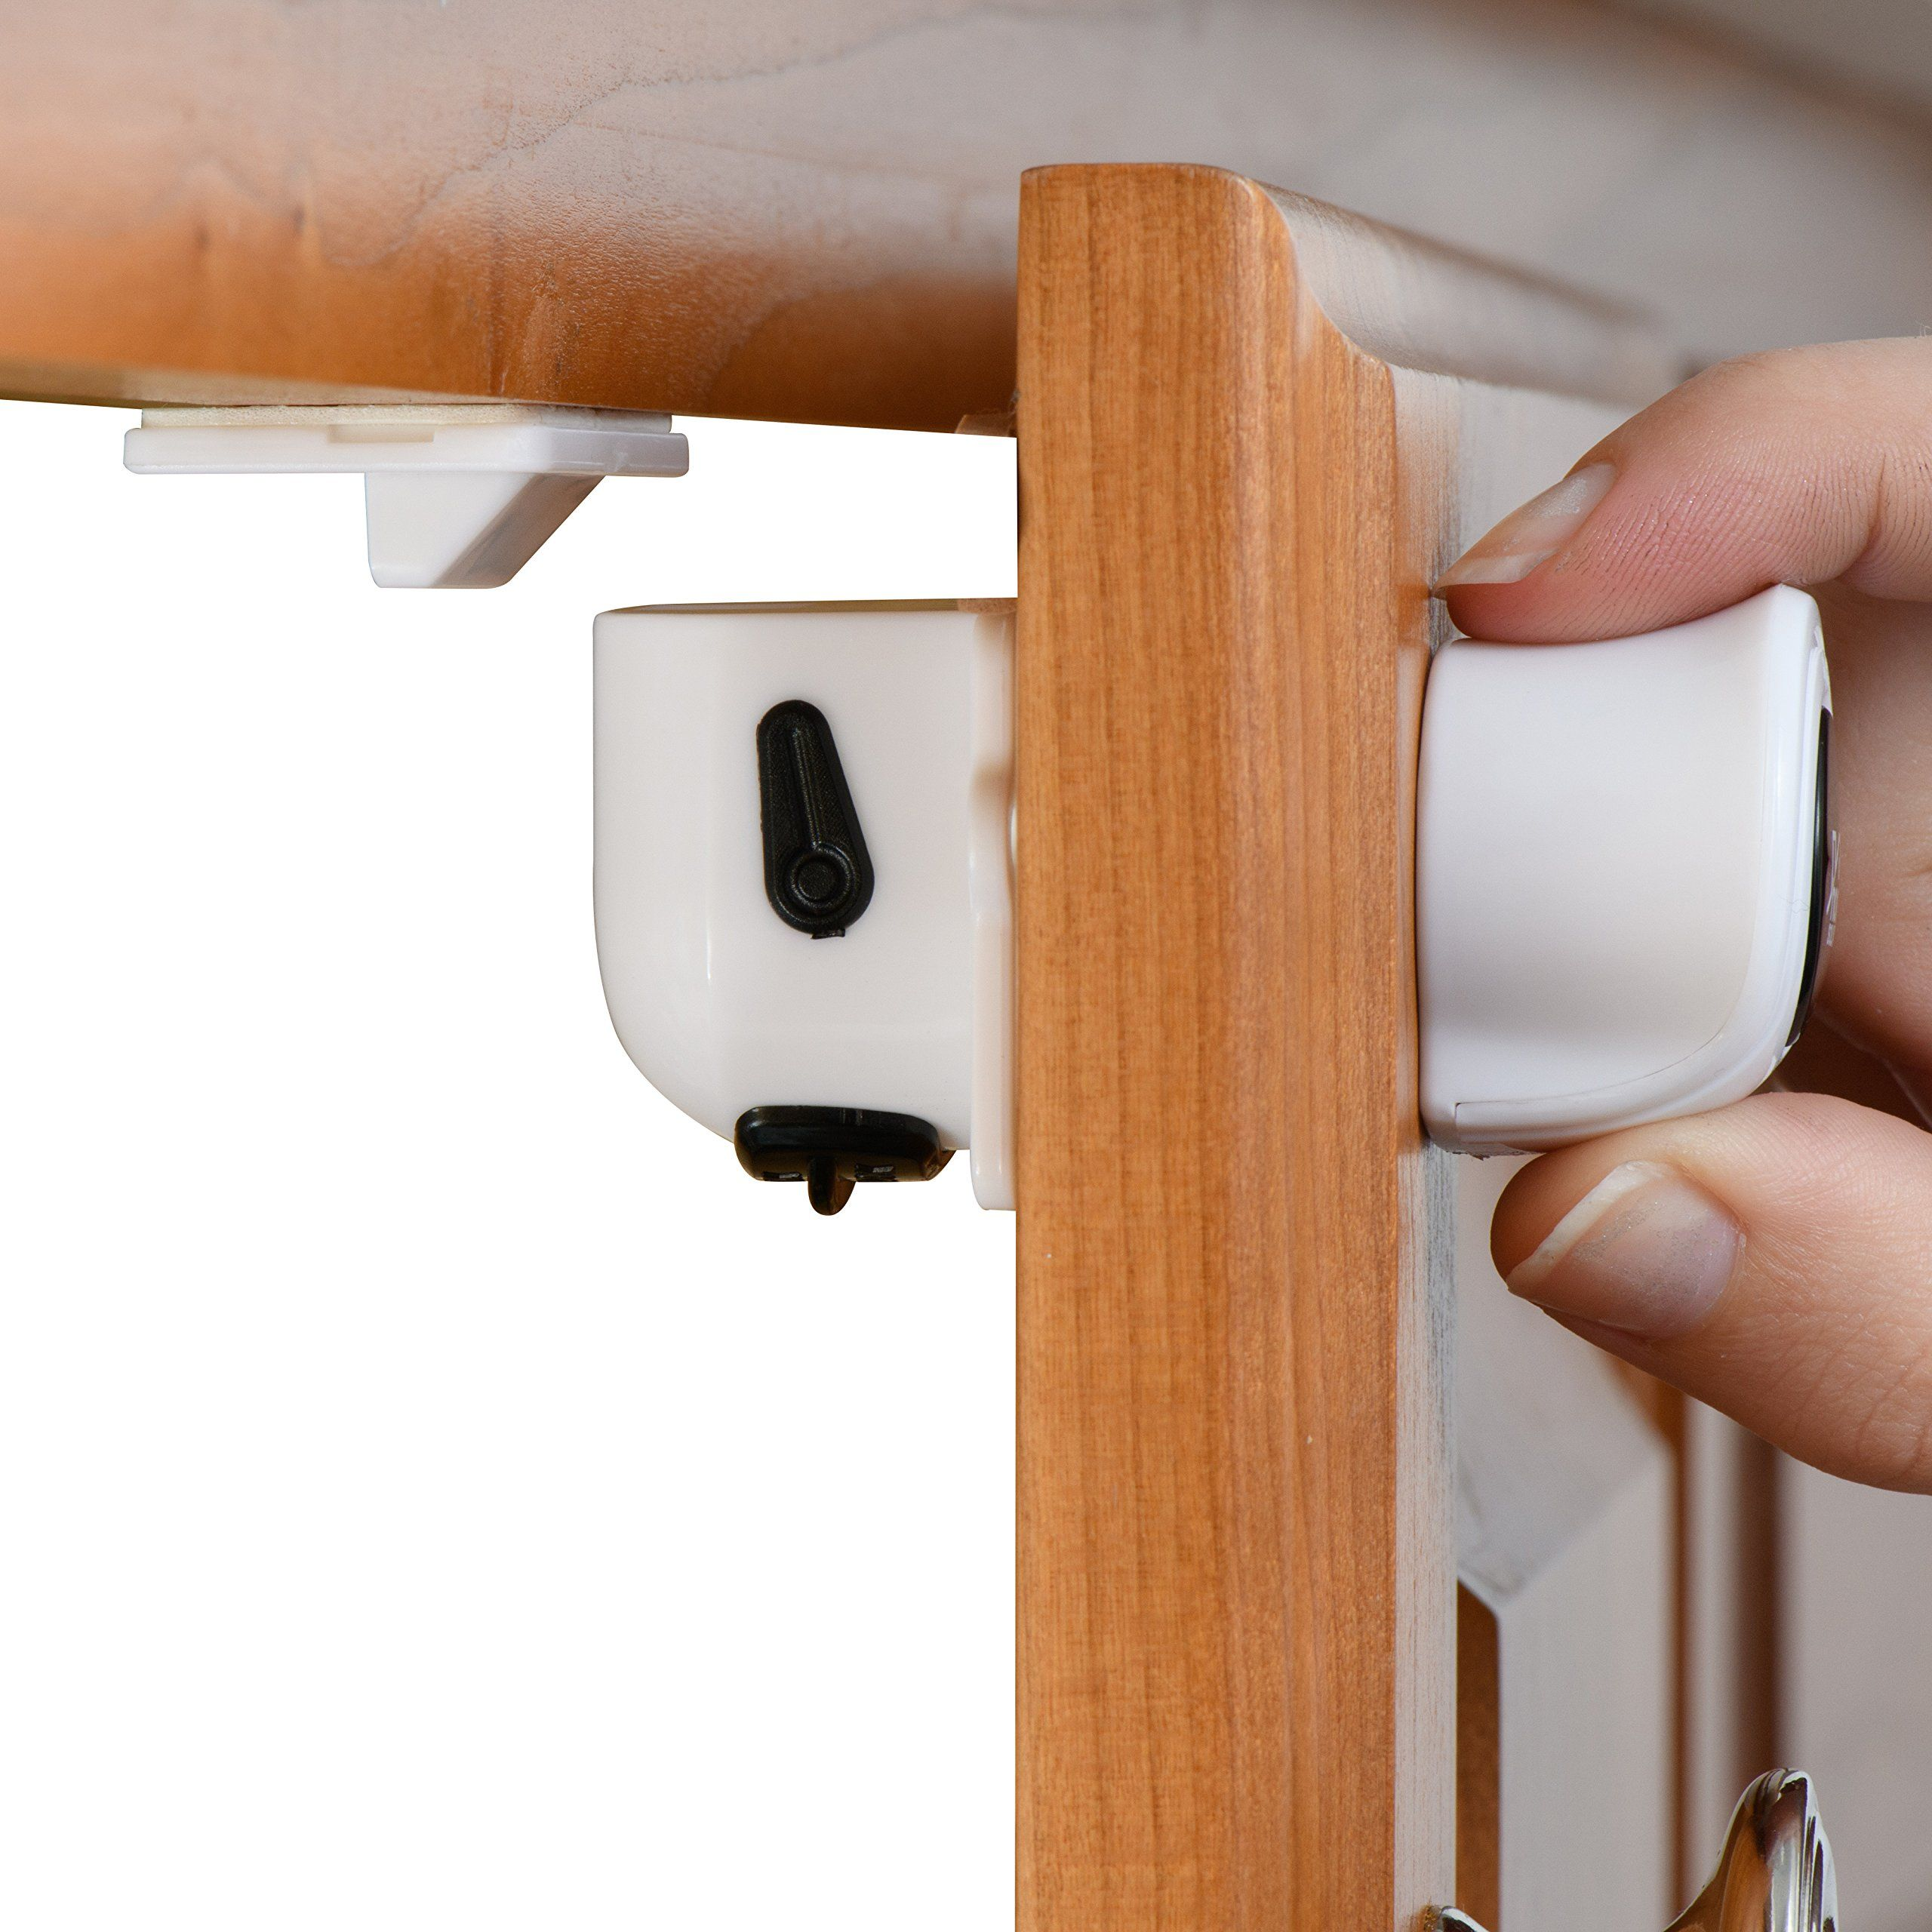 Super Hold Magnetic Cabinet Locks Easy To Install With 3m Adhesive